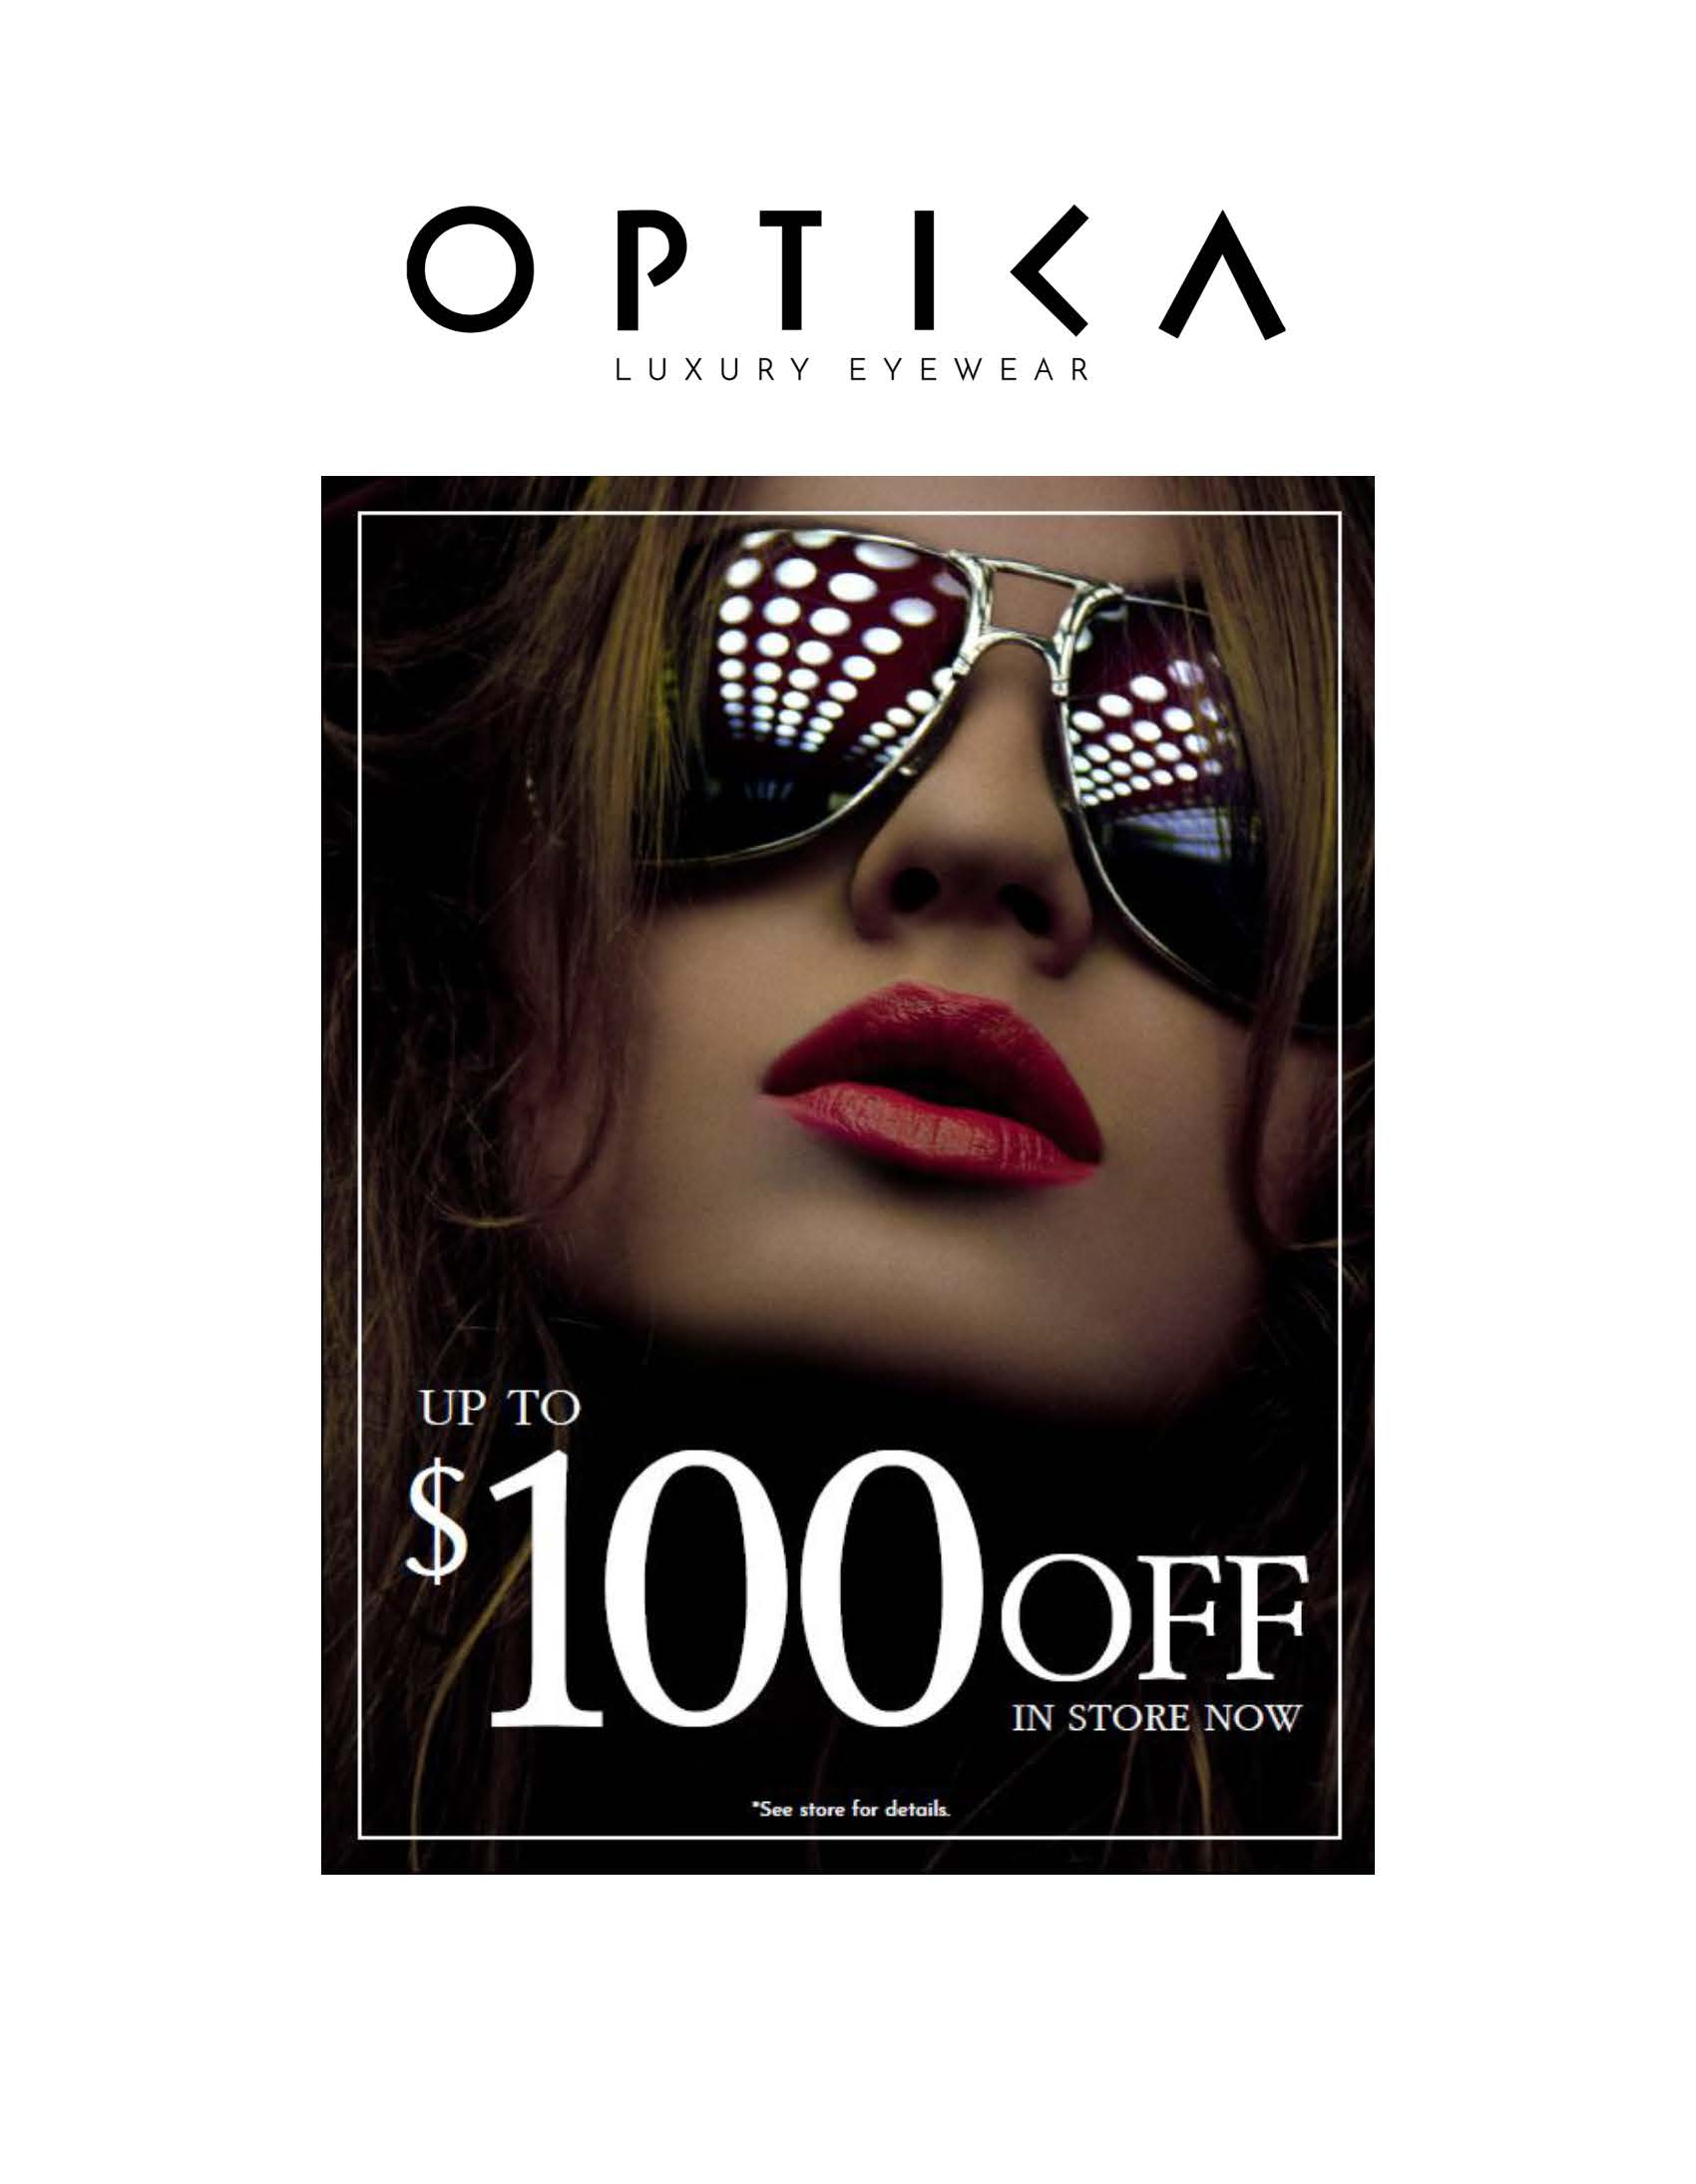 Up to $100 OFF from Optica